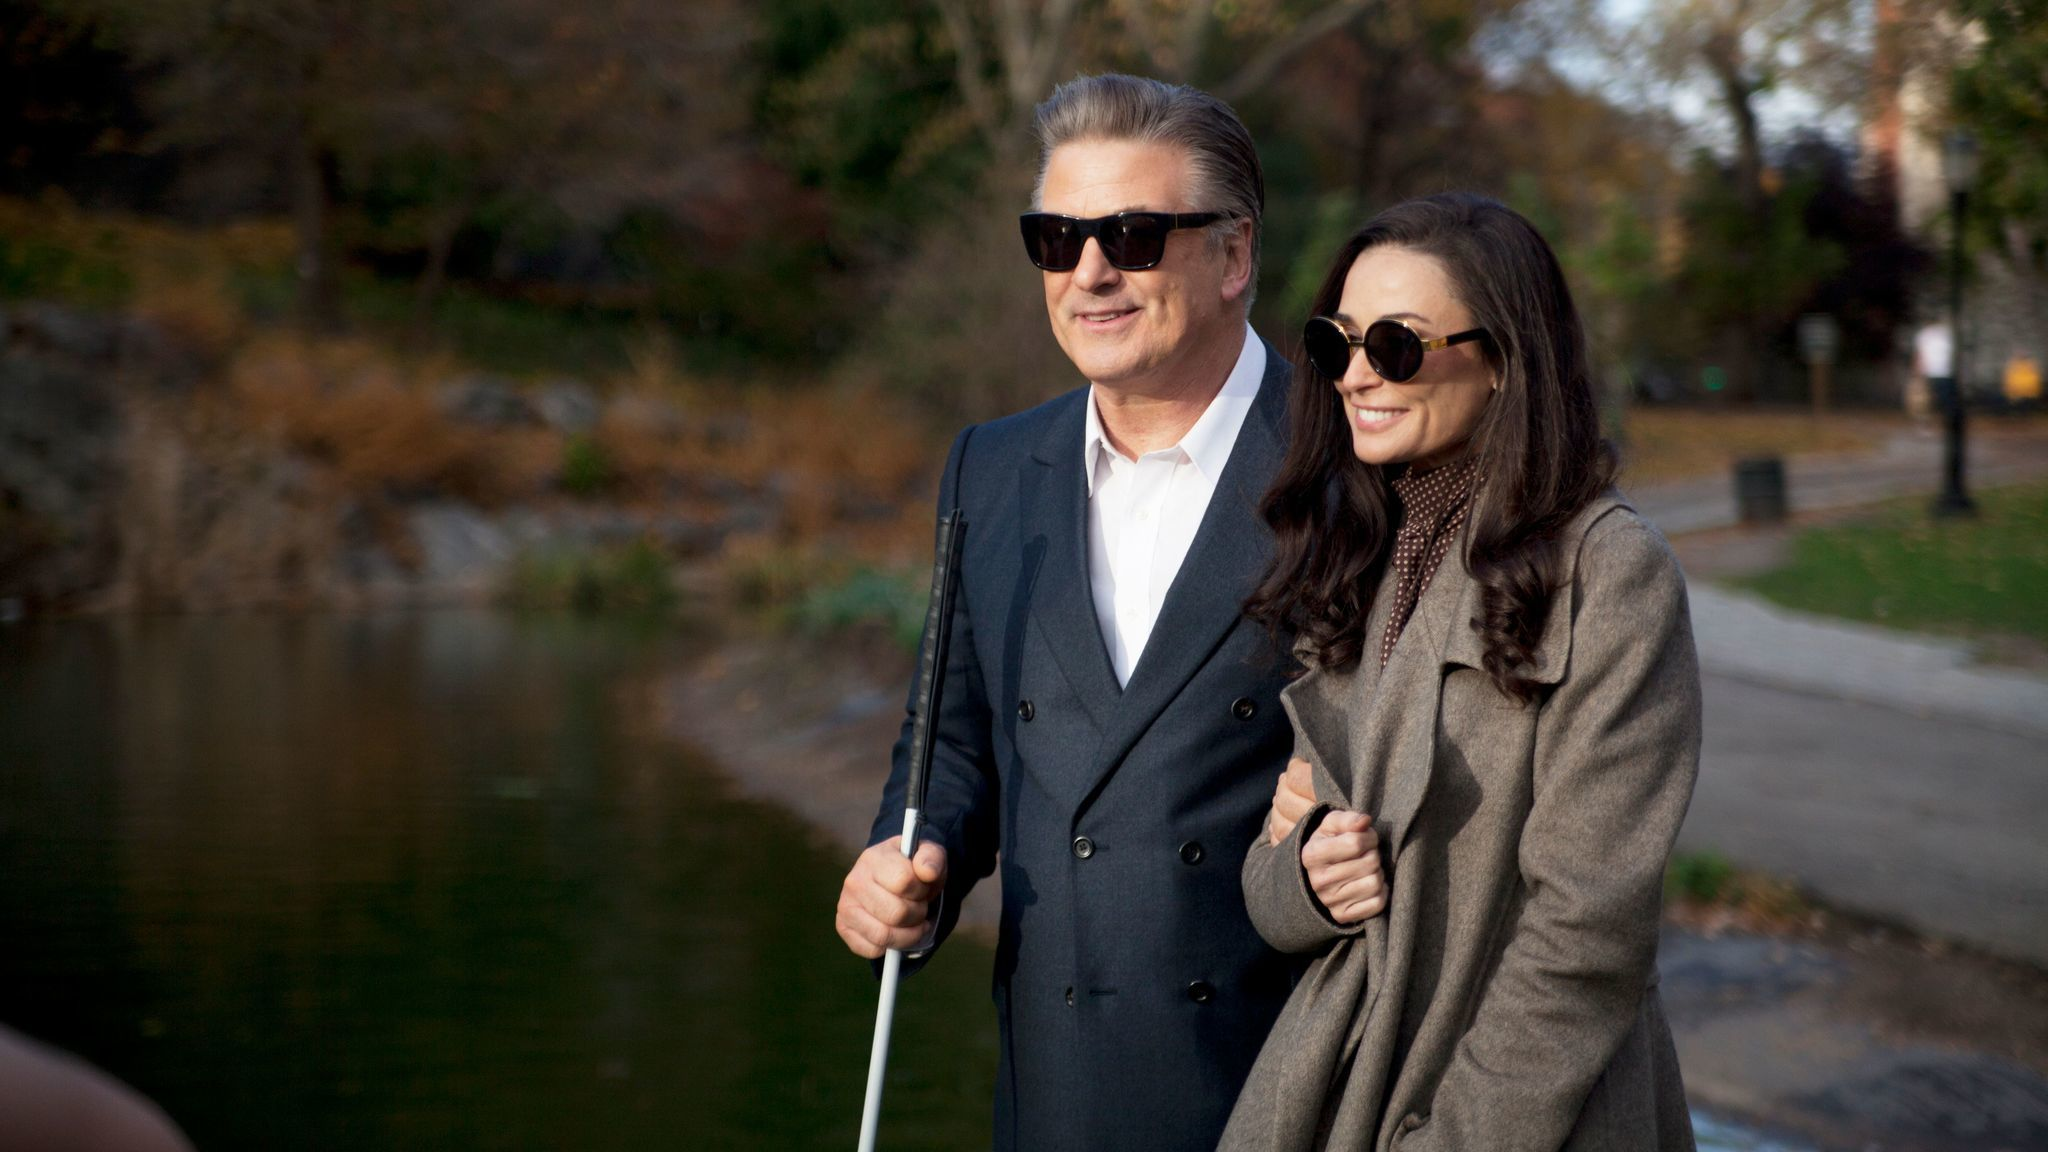 Ruderman Family Foundation Condemns 'Blind' Film for Casting Alec Baldwin in Disability Role